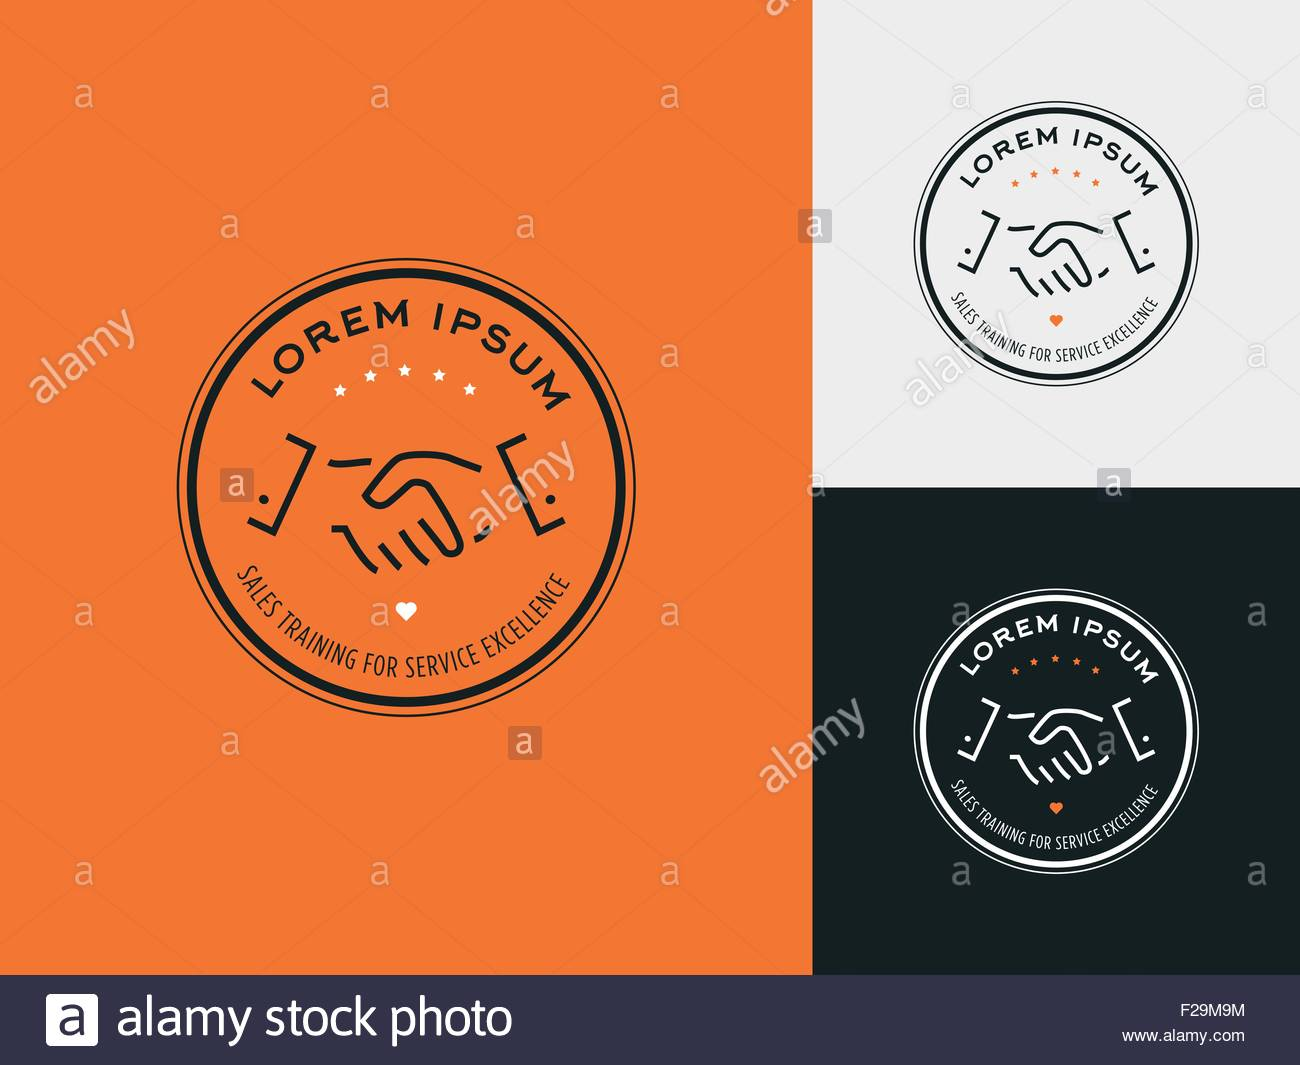 Sales consultant, sales trainer or mystery shopper company logo. Customer satisfaction, partnership and service - Stock Image